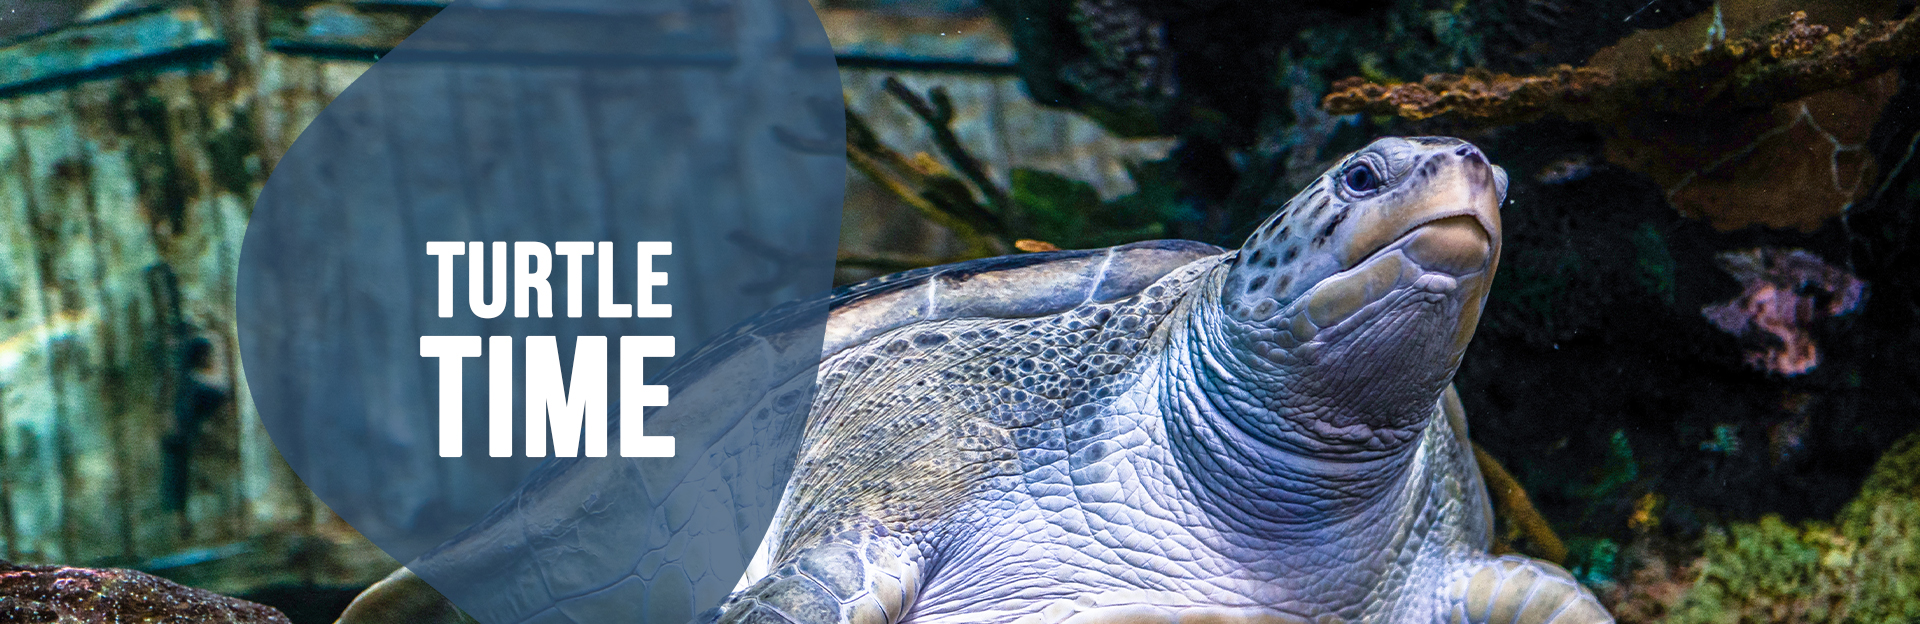 Header Image of a turtle for the Turtle Time page